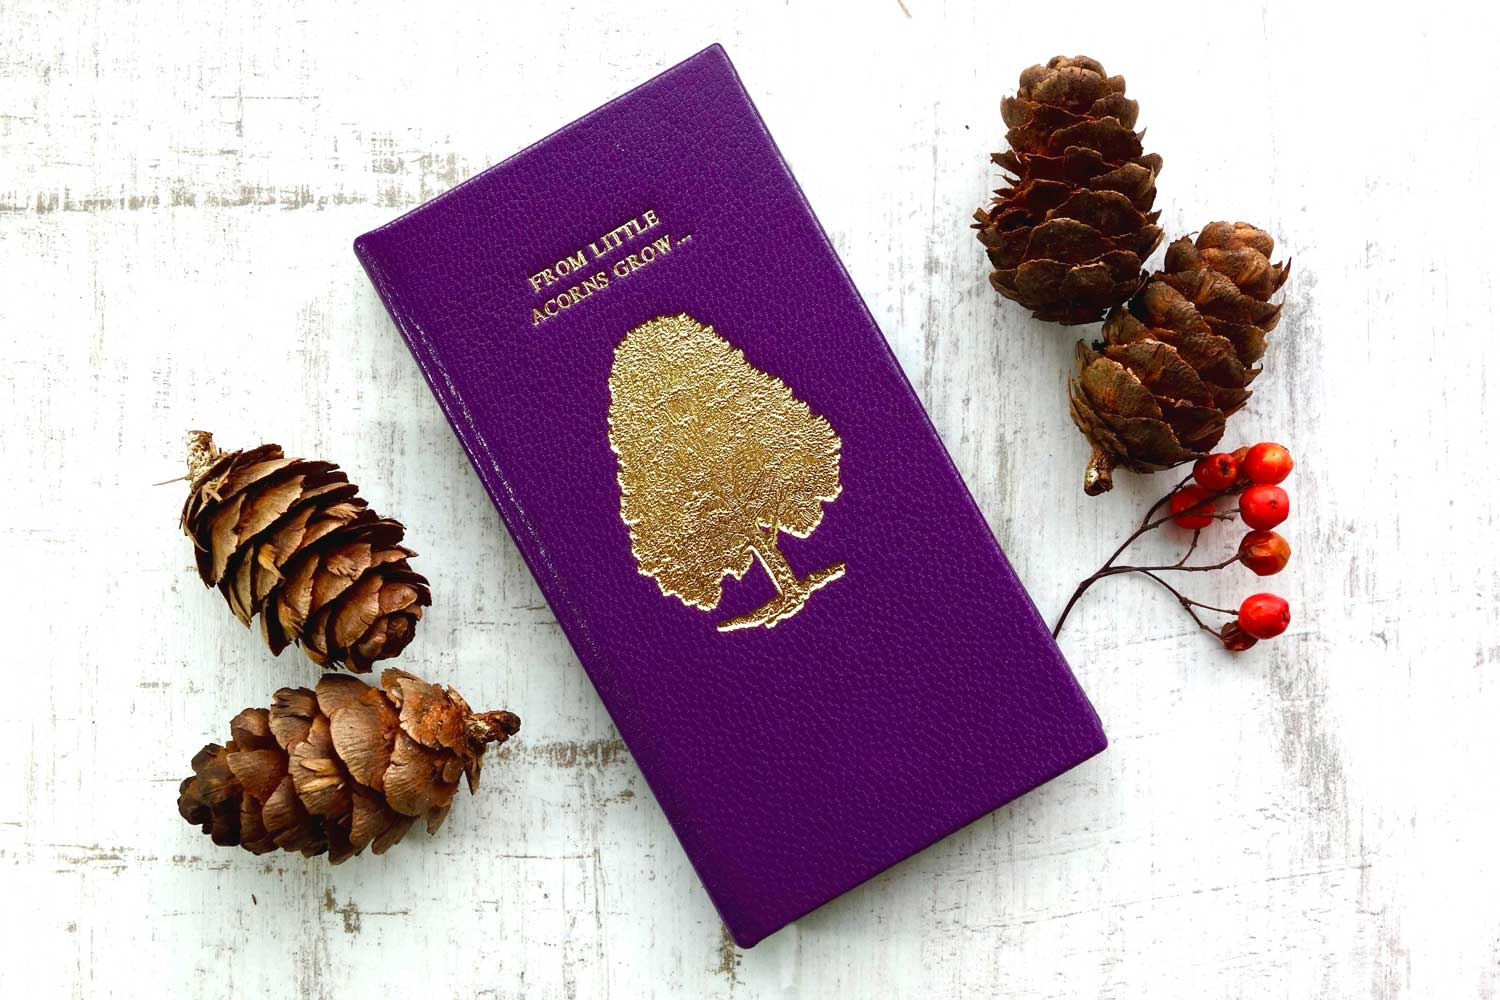 iphone leather book case from Bookshell Bindery in purple leather with tree cover picture